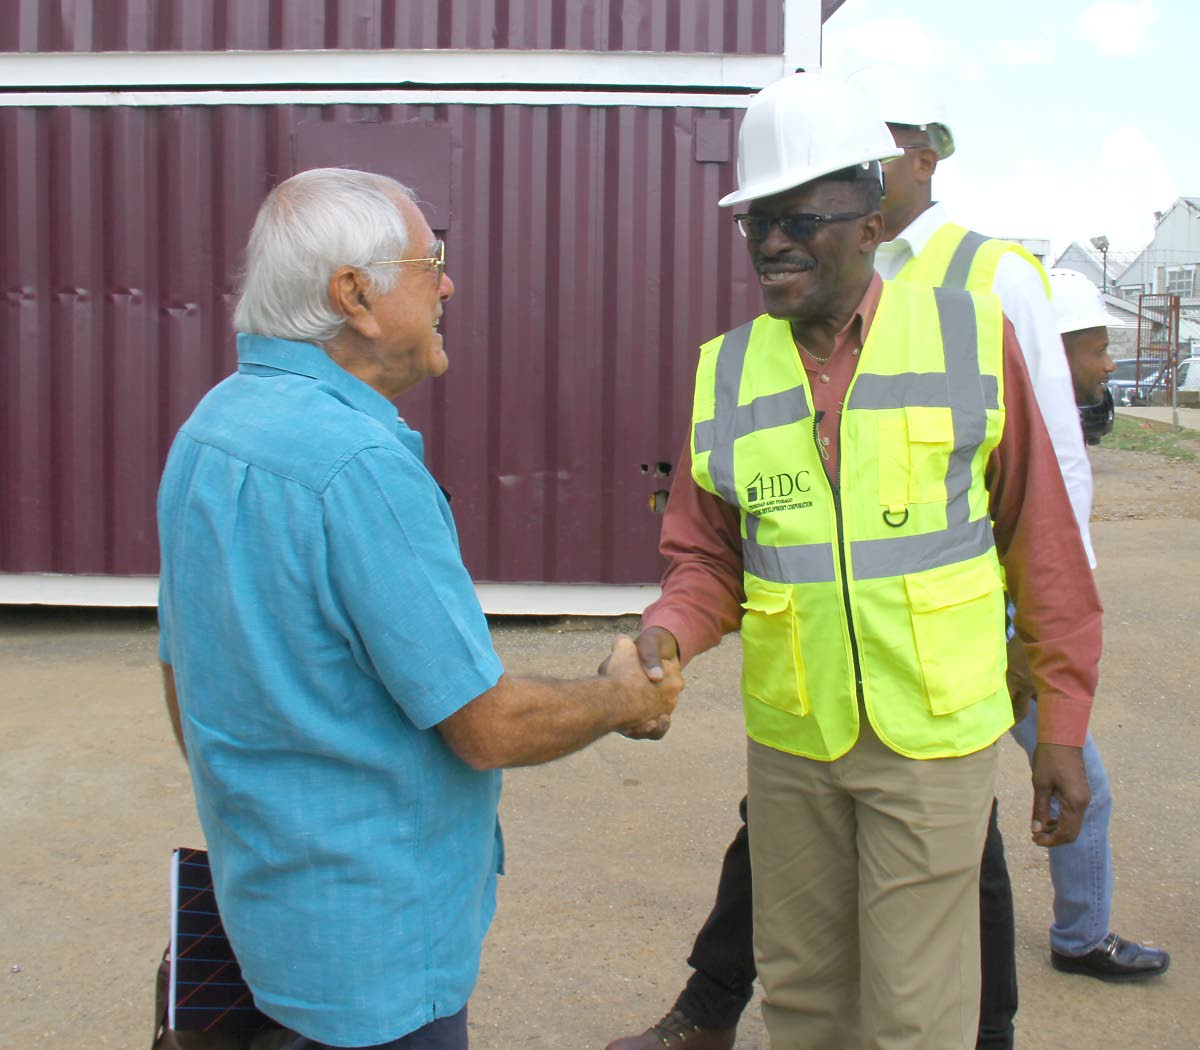 HEY THERE: Housing Minister Edmund Dillon, right, greets NH (International) chairman Emile Elias yesterday during a tour of a HDC site which is under construction in Mt Hope. PHOTO BY ROGER JACOB